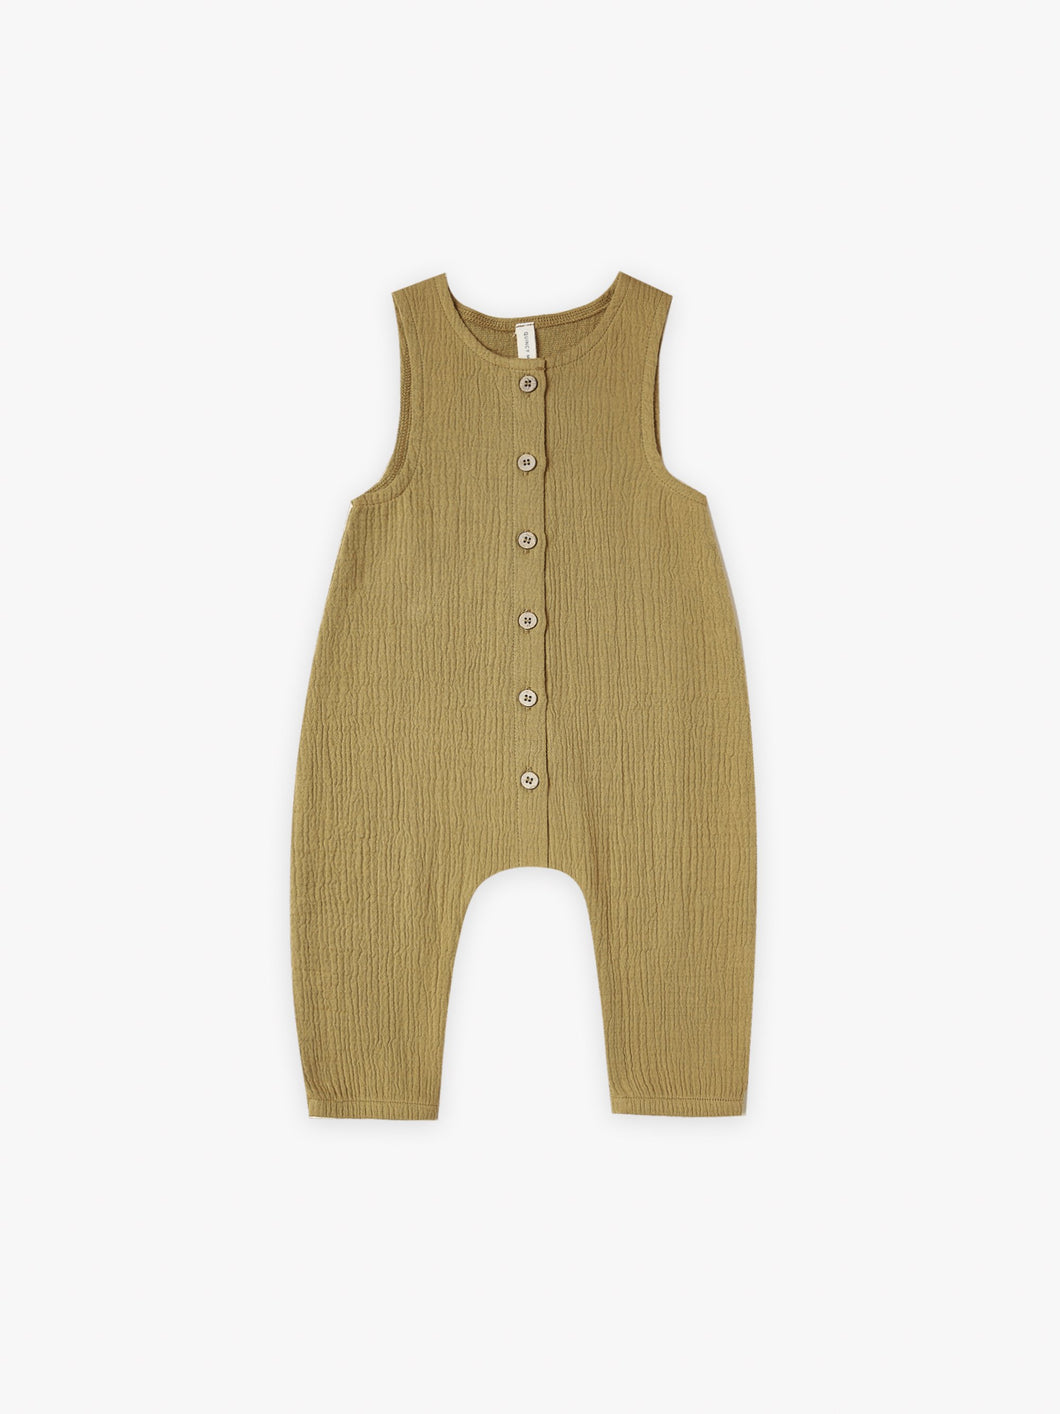 Quincy Mae Woven Sleeveless Snap Jumpsuit - Ocre